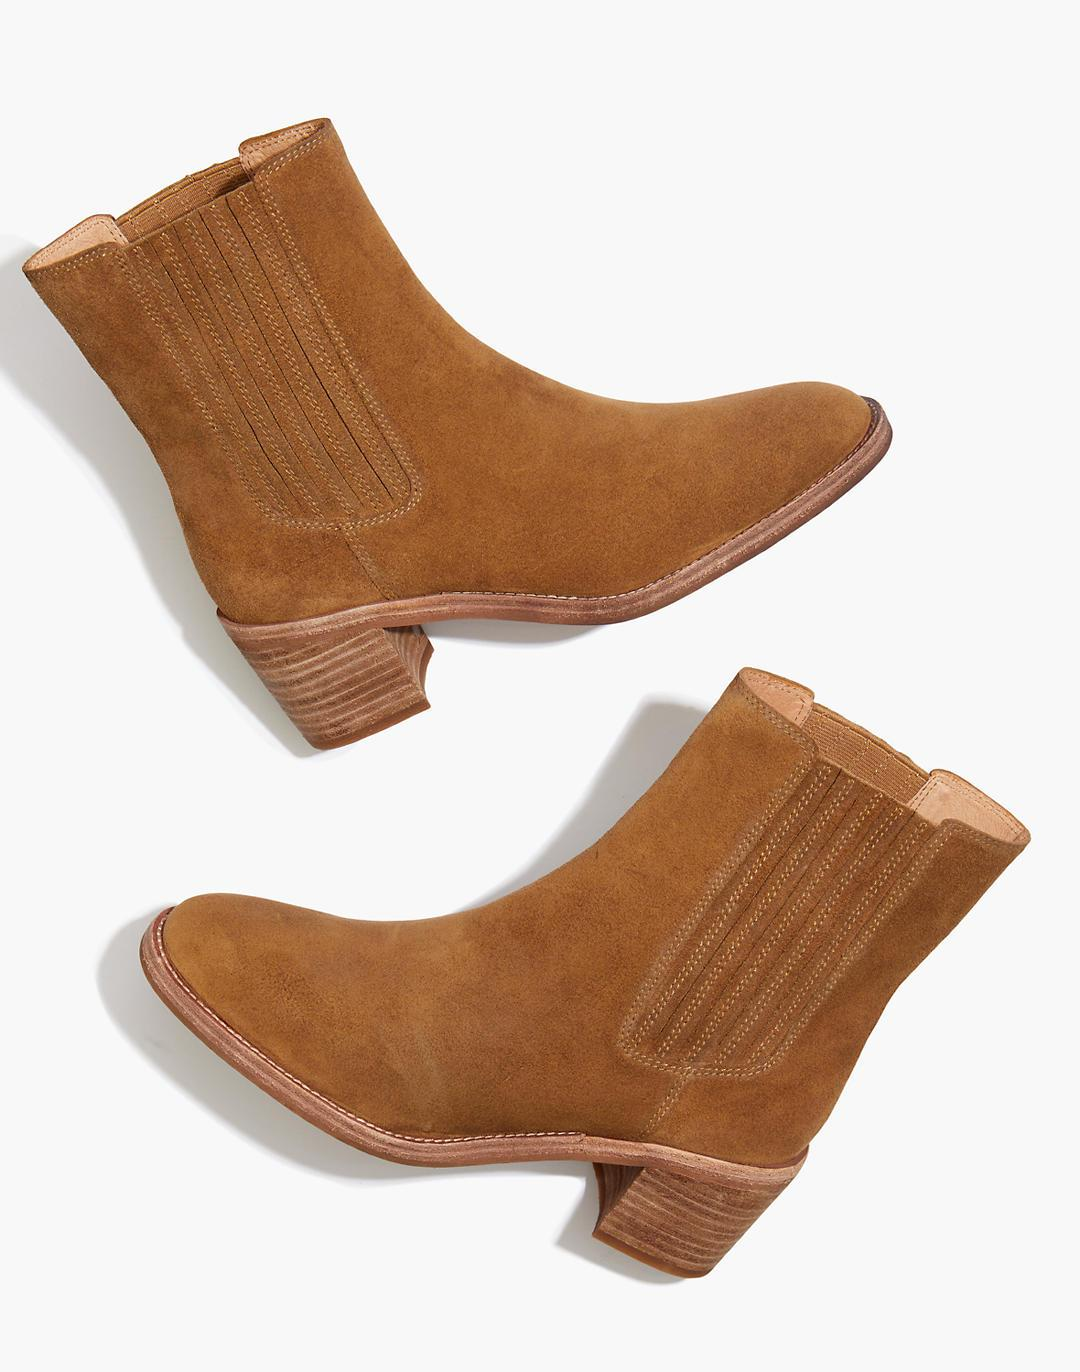 The Autumn High Chelsea Boot in Suede